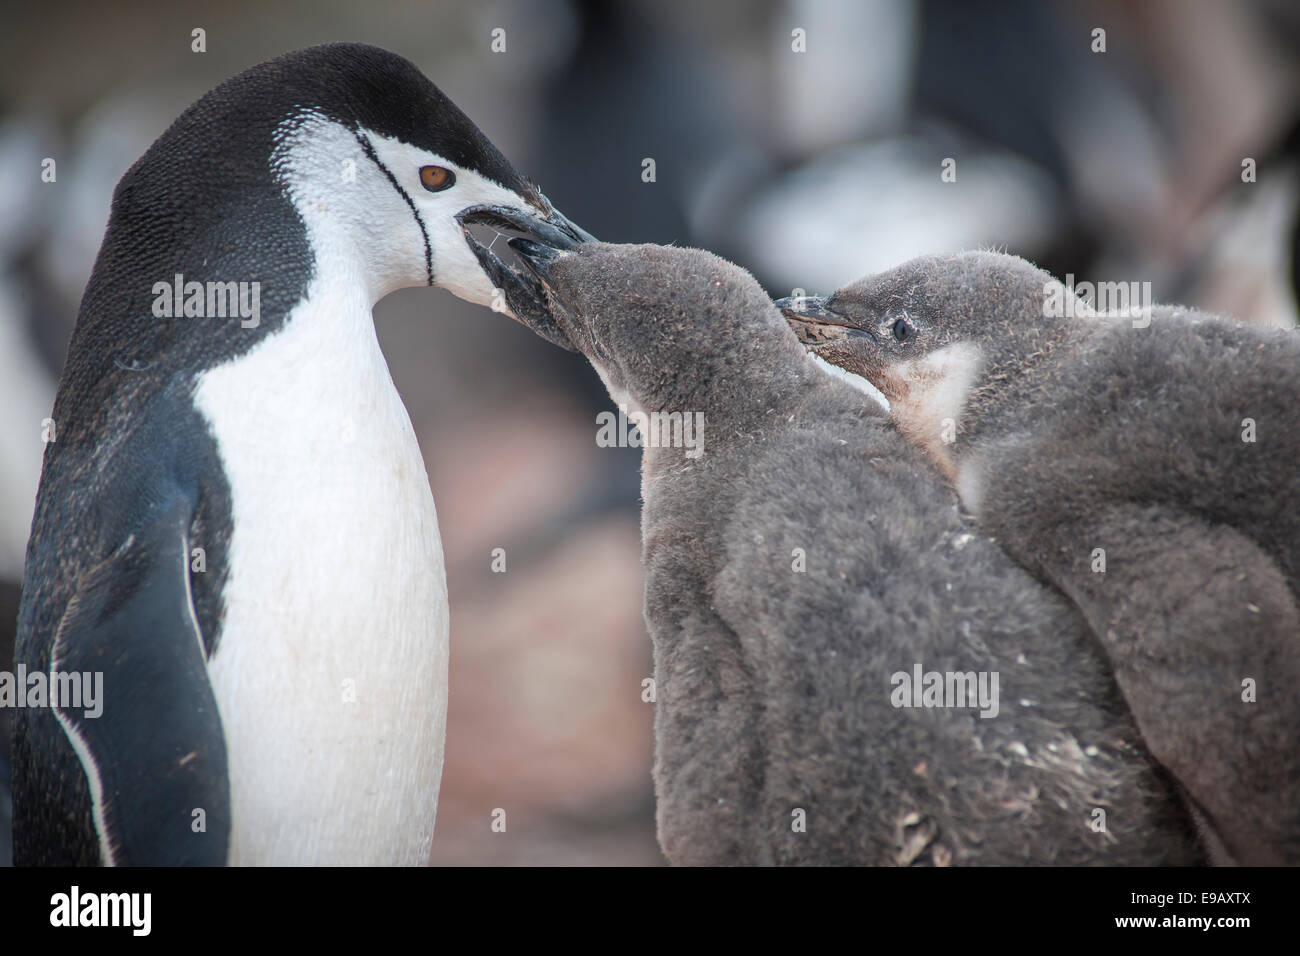 Chinstrap Penguin (Pygoscelis antarcticus) feeding a chick, Hannah Point, Livingston Iceland, Antarctica - Stock Image